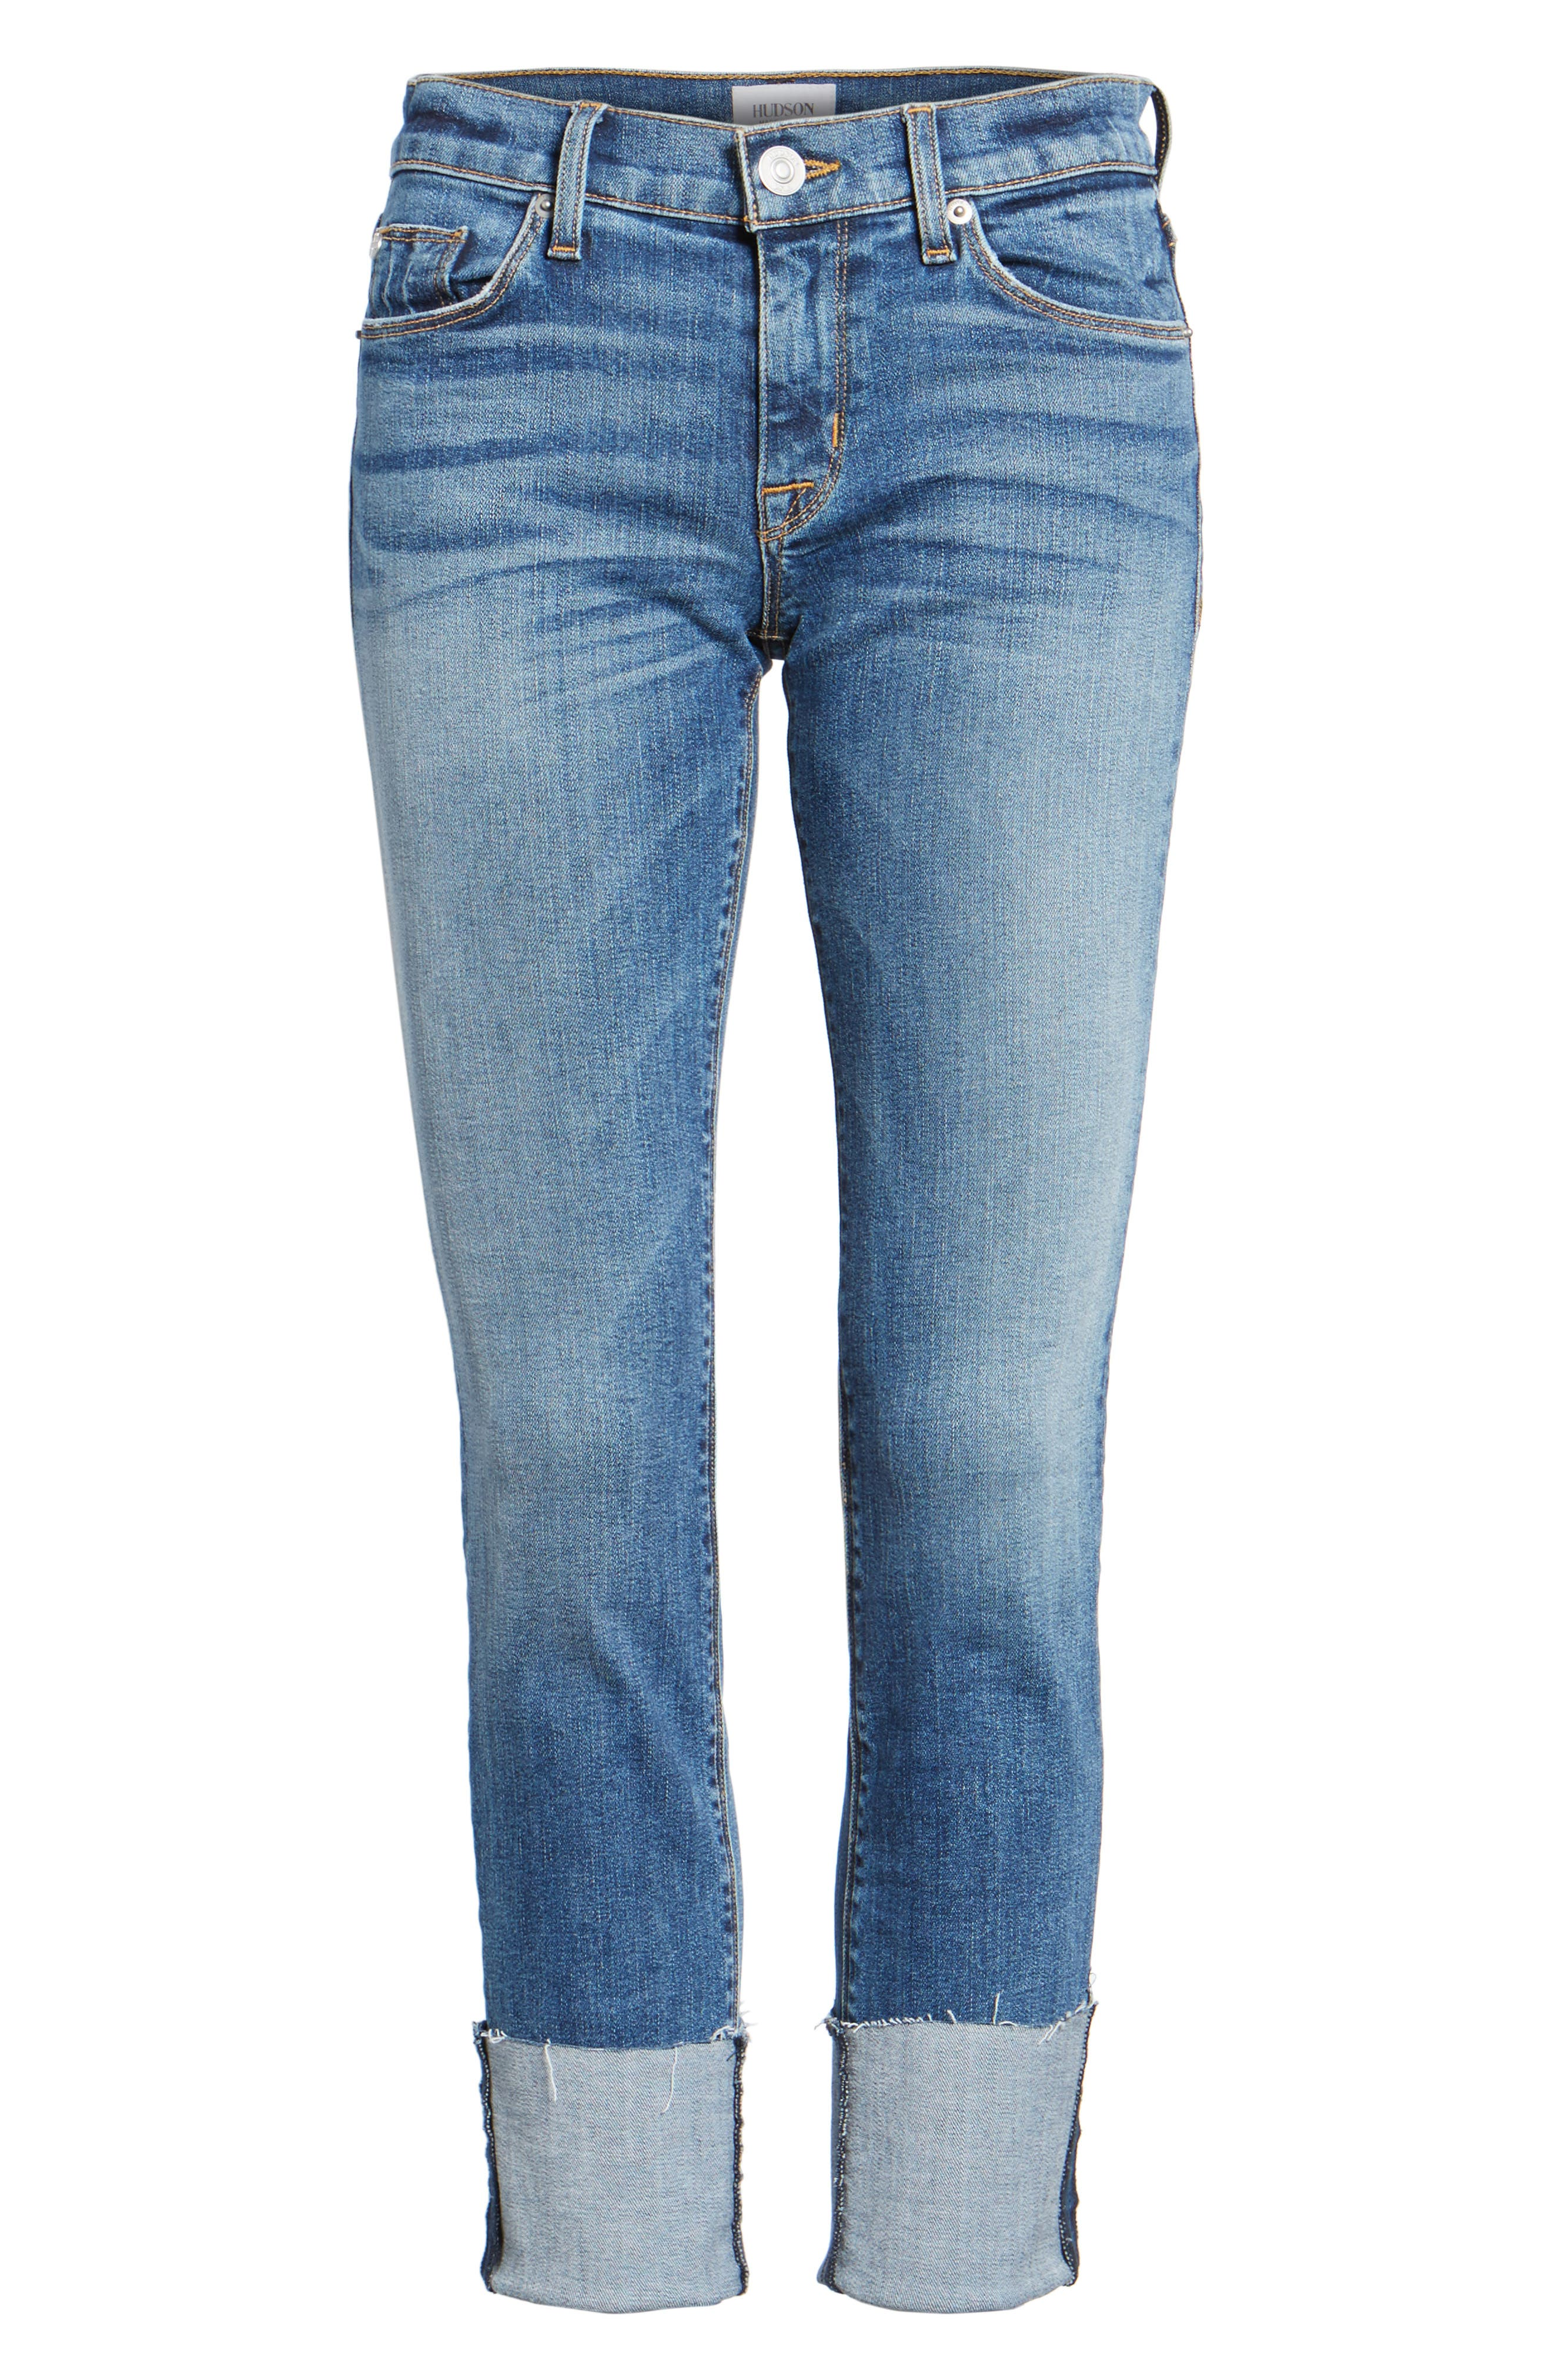 HUDSON JEANS,                             Tally Cuffed Crop Skinny Jeans,                             Alternate thumbnail 7, color,                             426